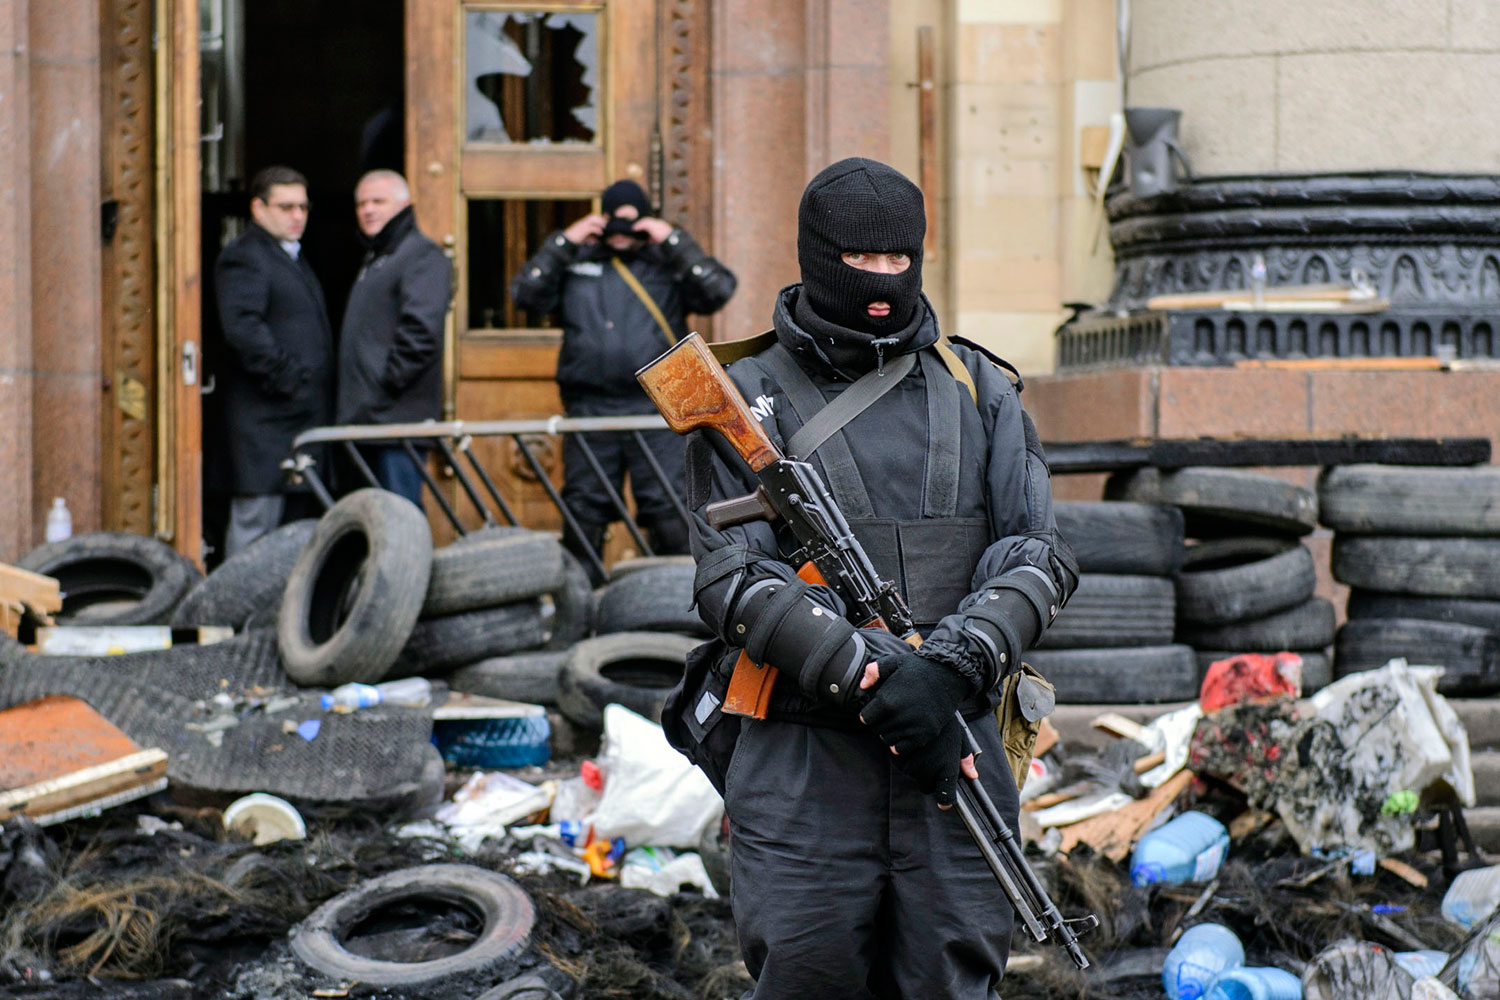 A masked member of the Ukrainian special forces stands guard outside the regional administration building in Kharkiv, April 8, 2014.